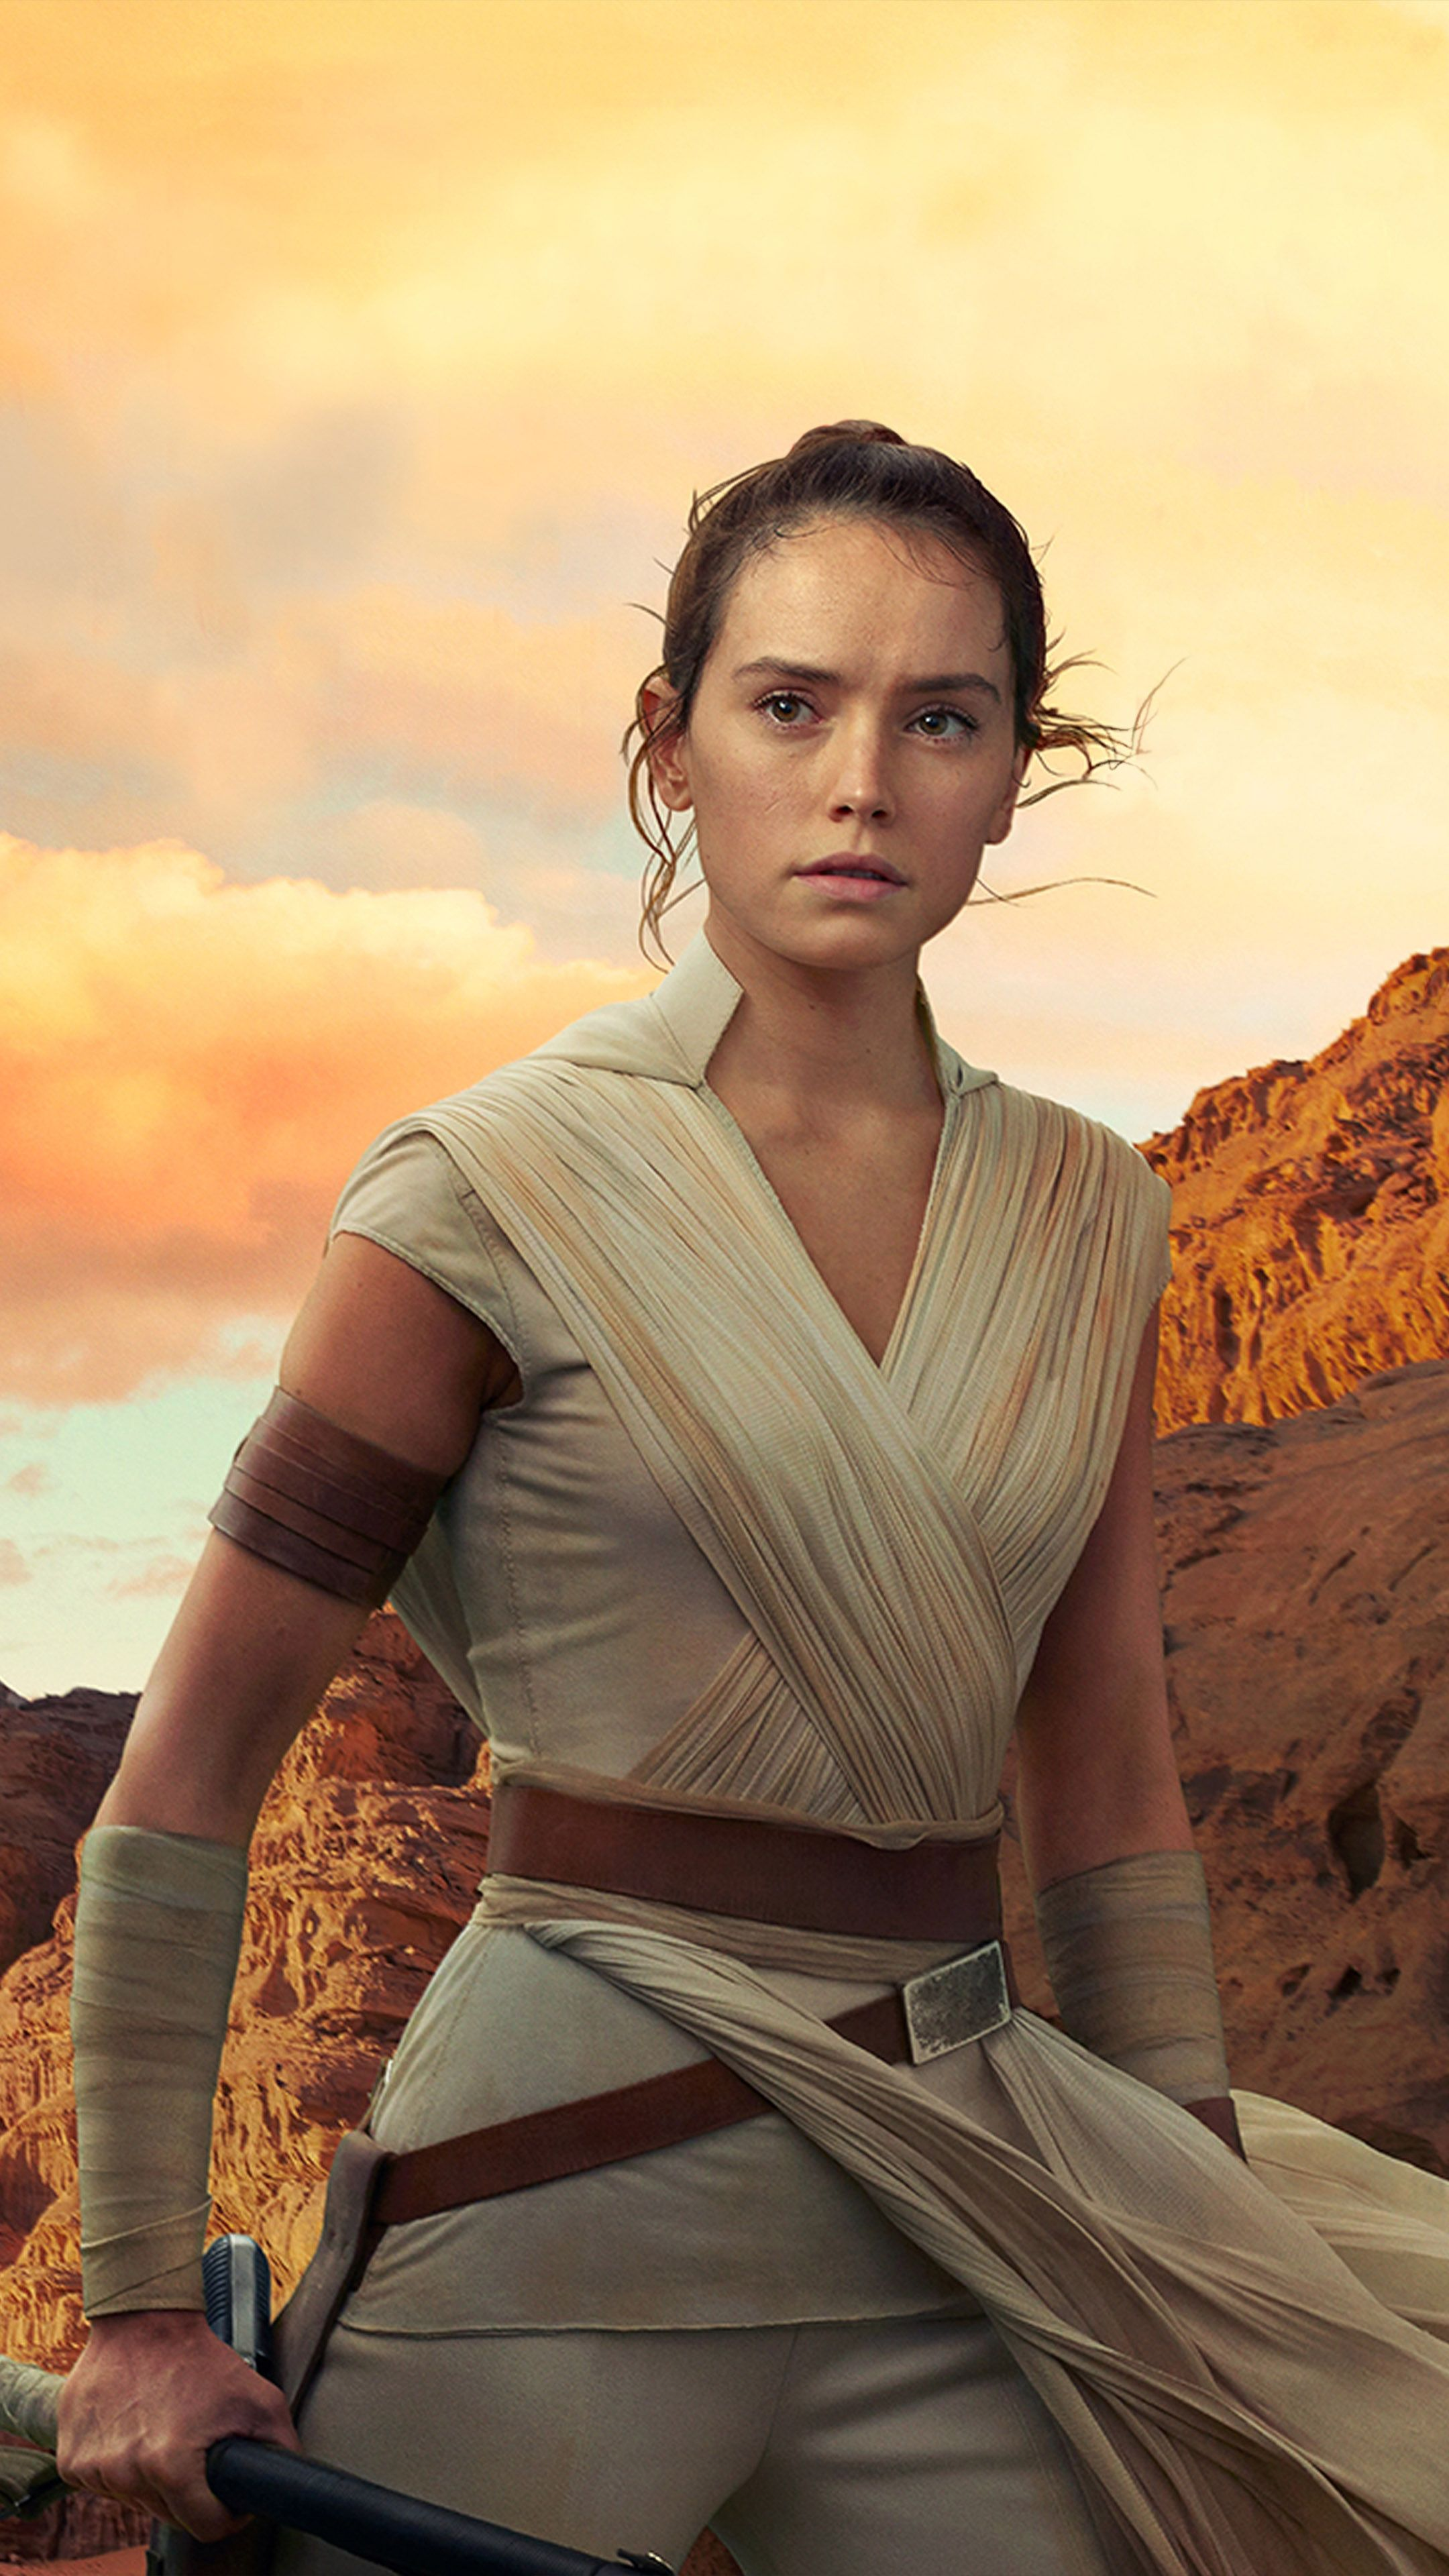 Daisy Ridley In Star Wars The Rise Of Skywalker Daisy Ridley